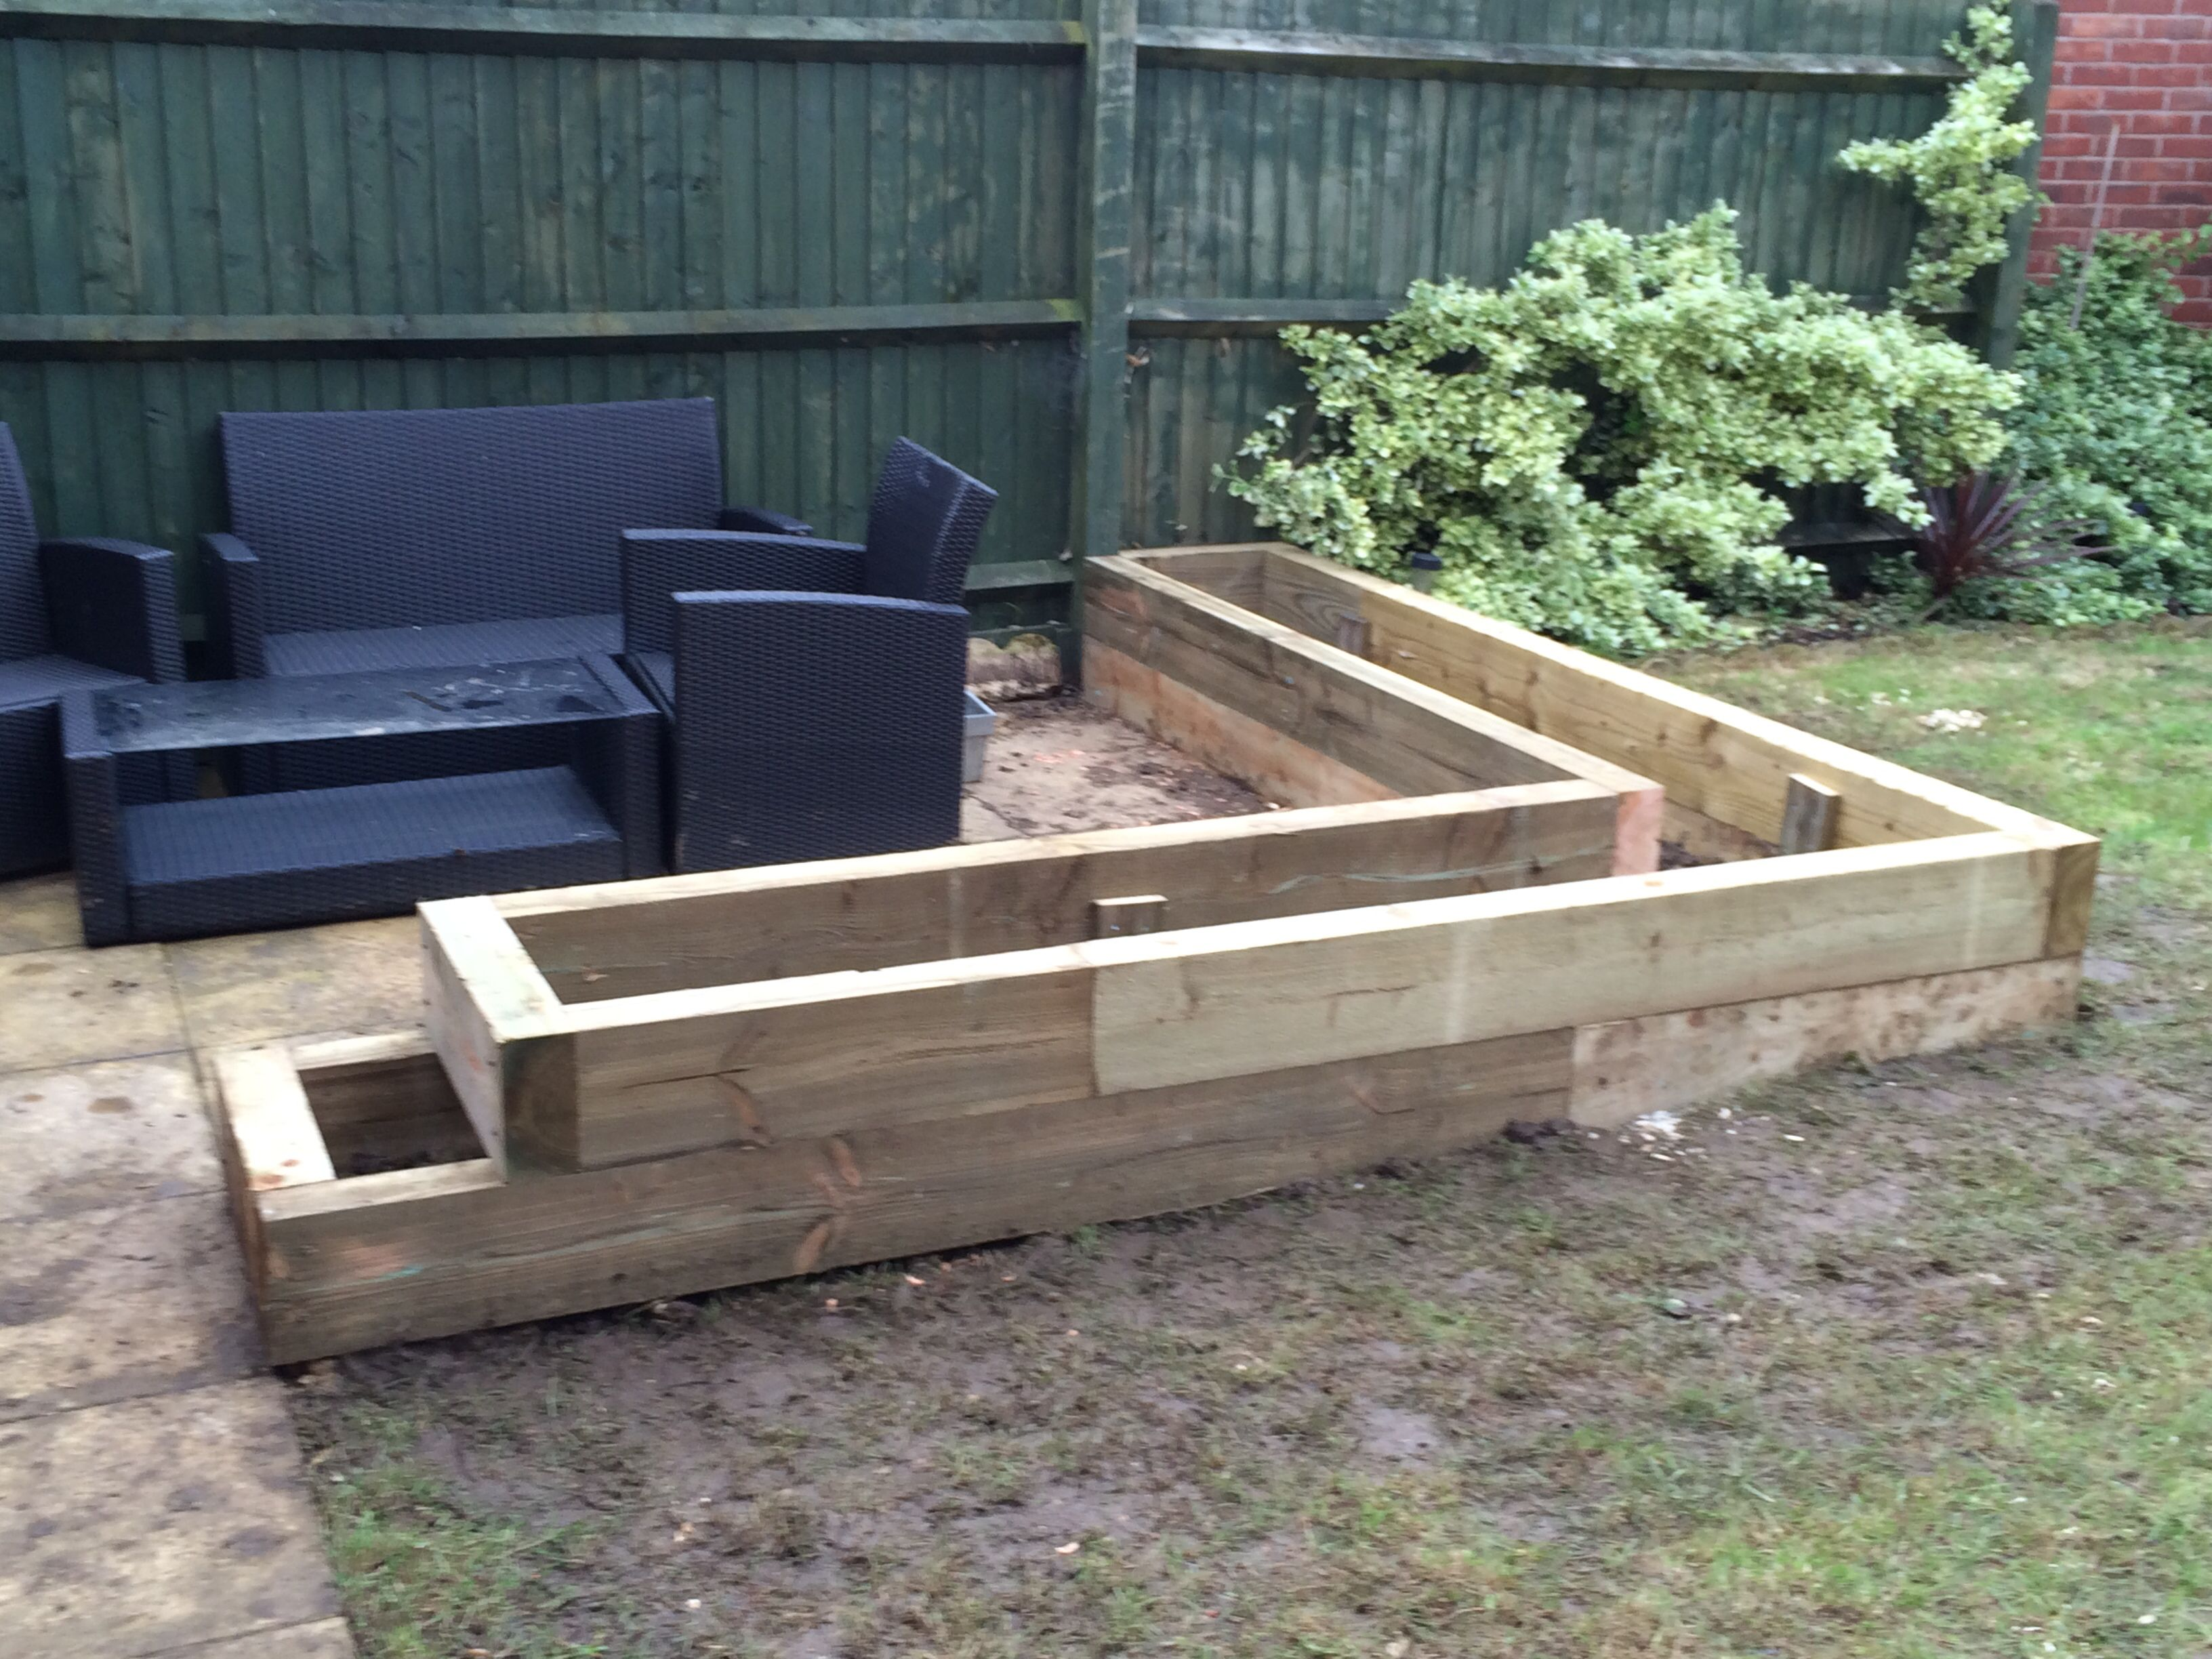 Raised planter made from Eco sleepers to frame patio area